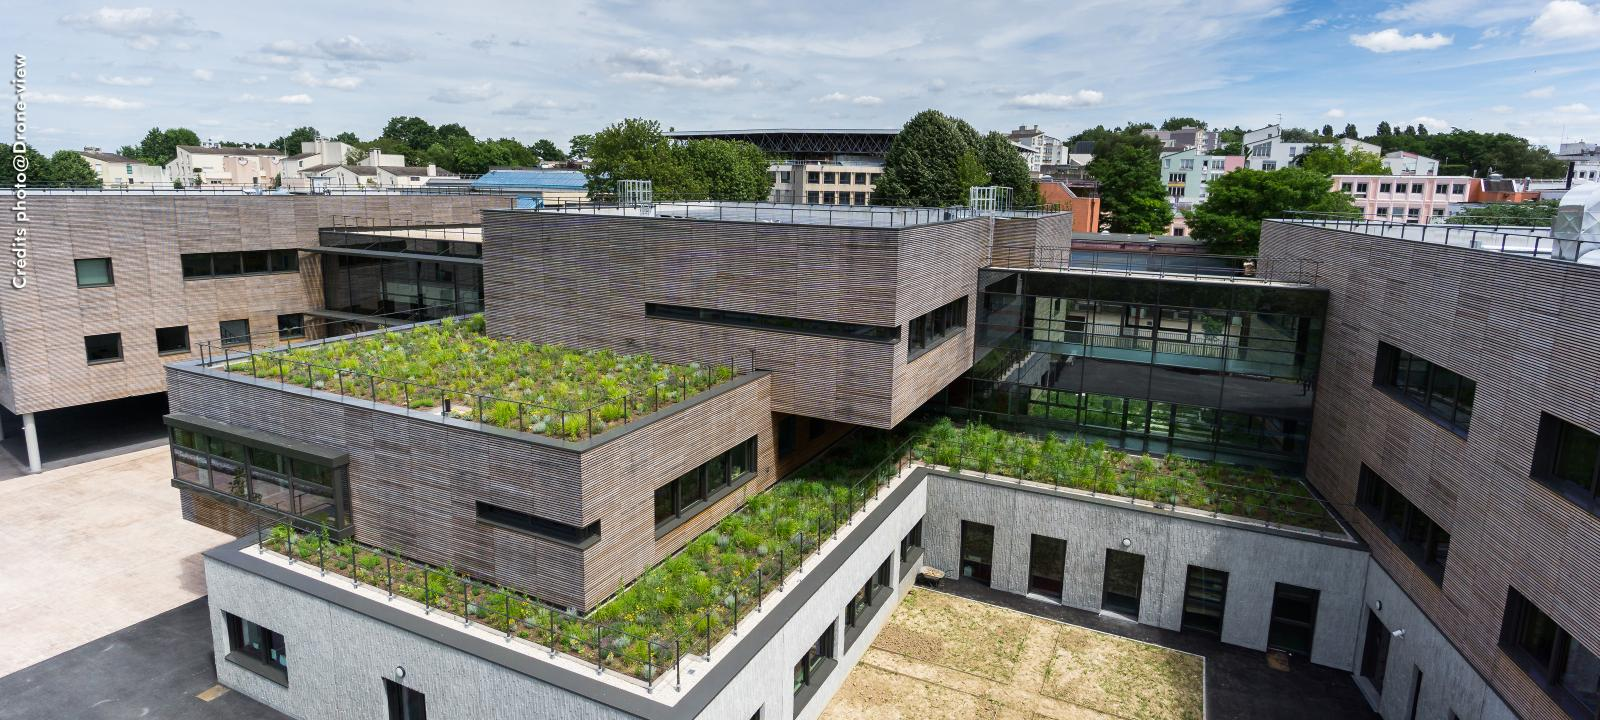 Extensive green roofs